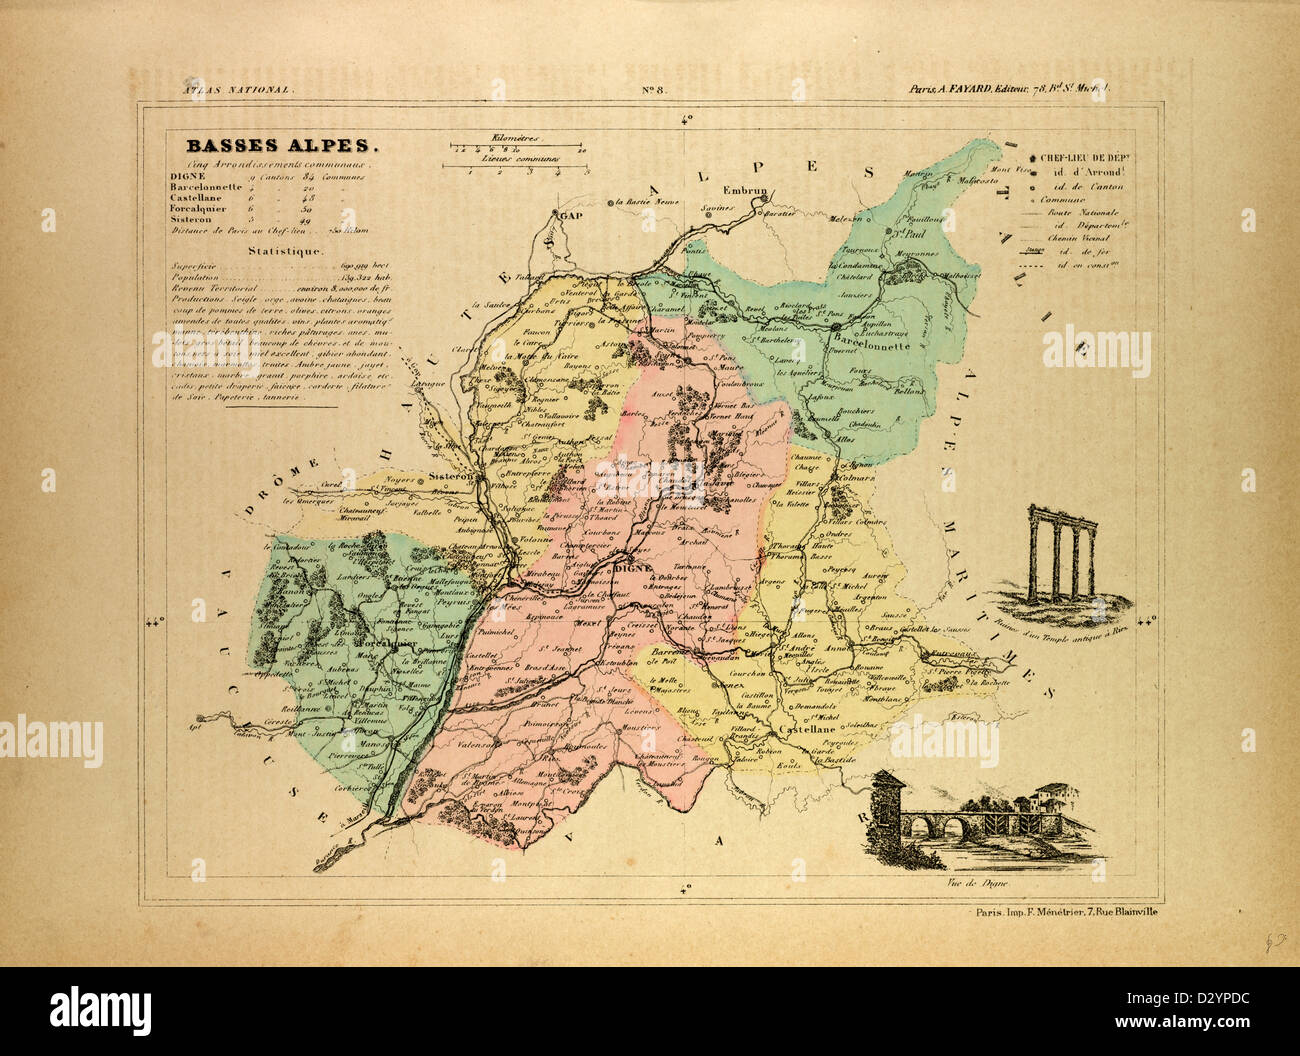 Sisteron France Map.Map Basses Alpes France Stock Photos Map Basses Alpes France Stock